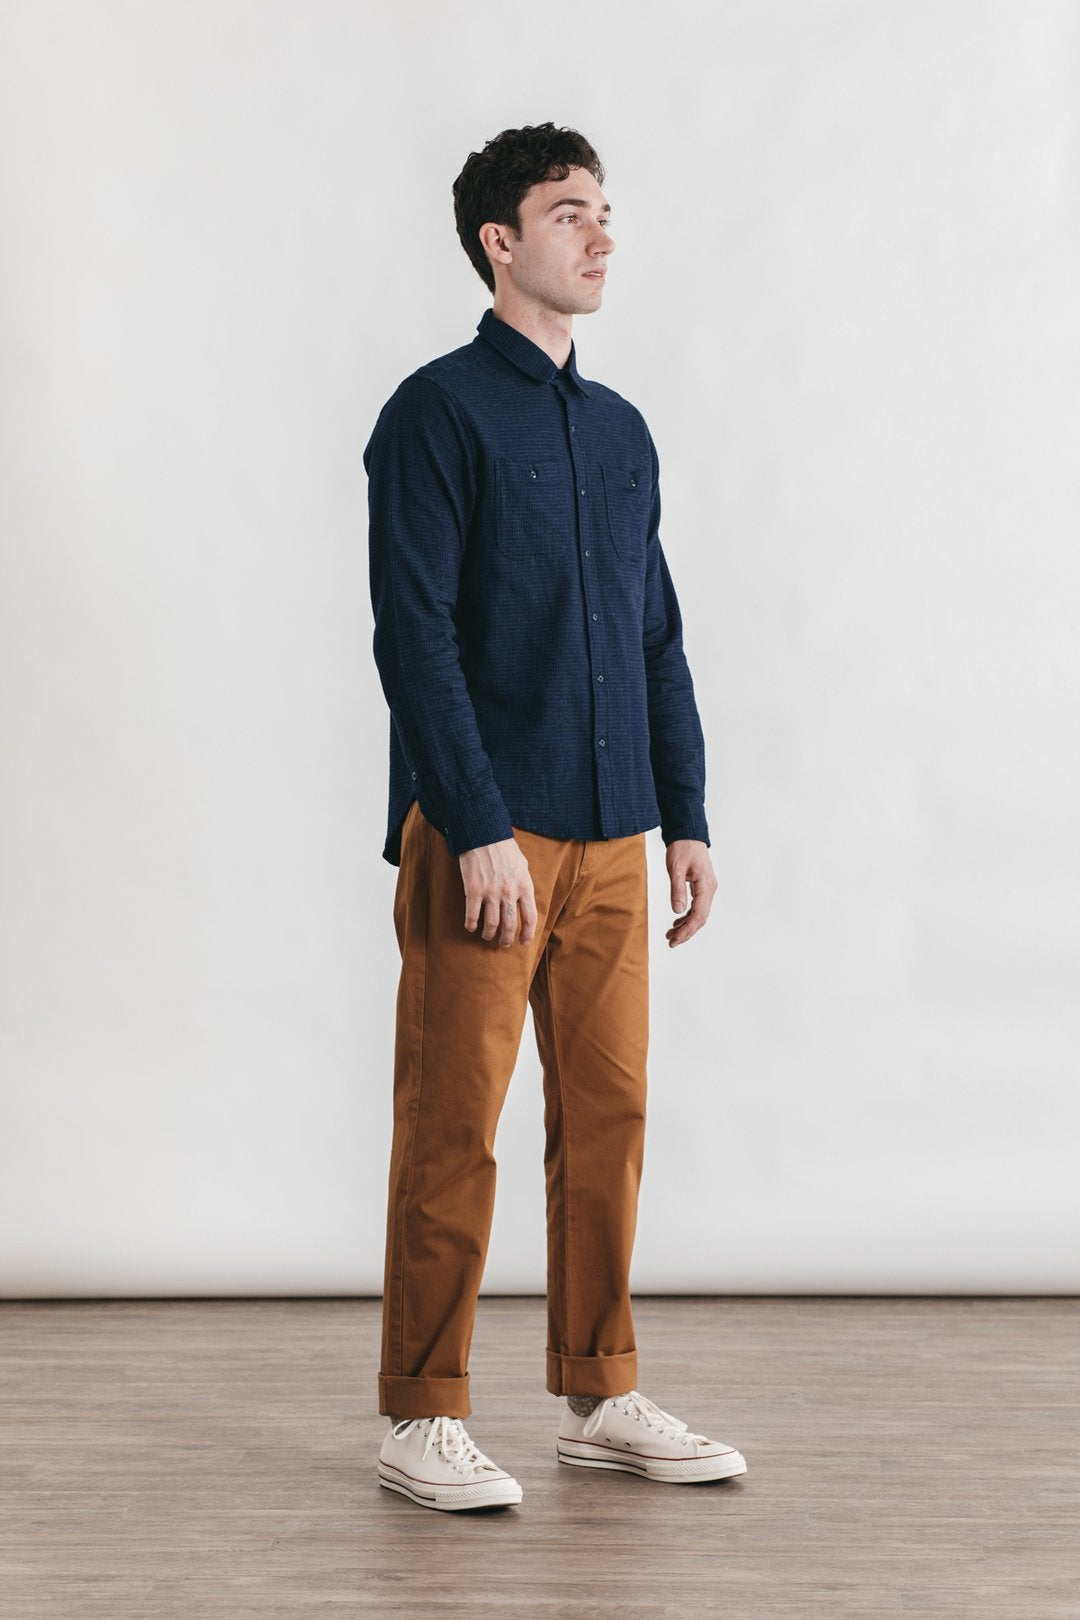 Image of Bridge + Burn Winslow Button Down - Indigo Grid